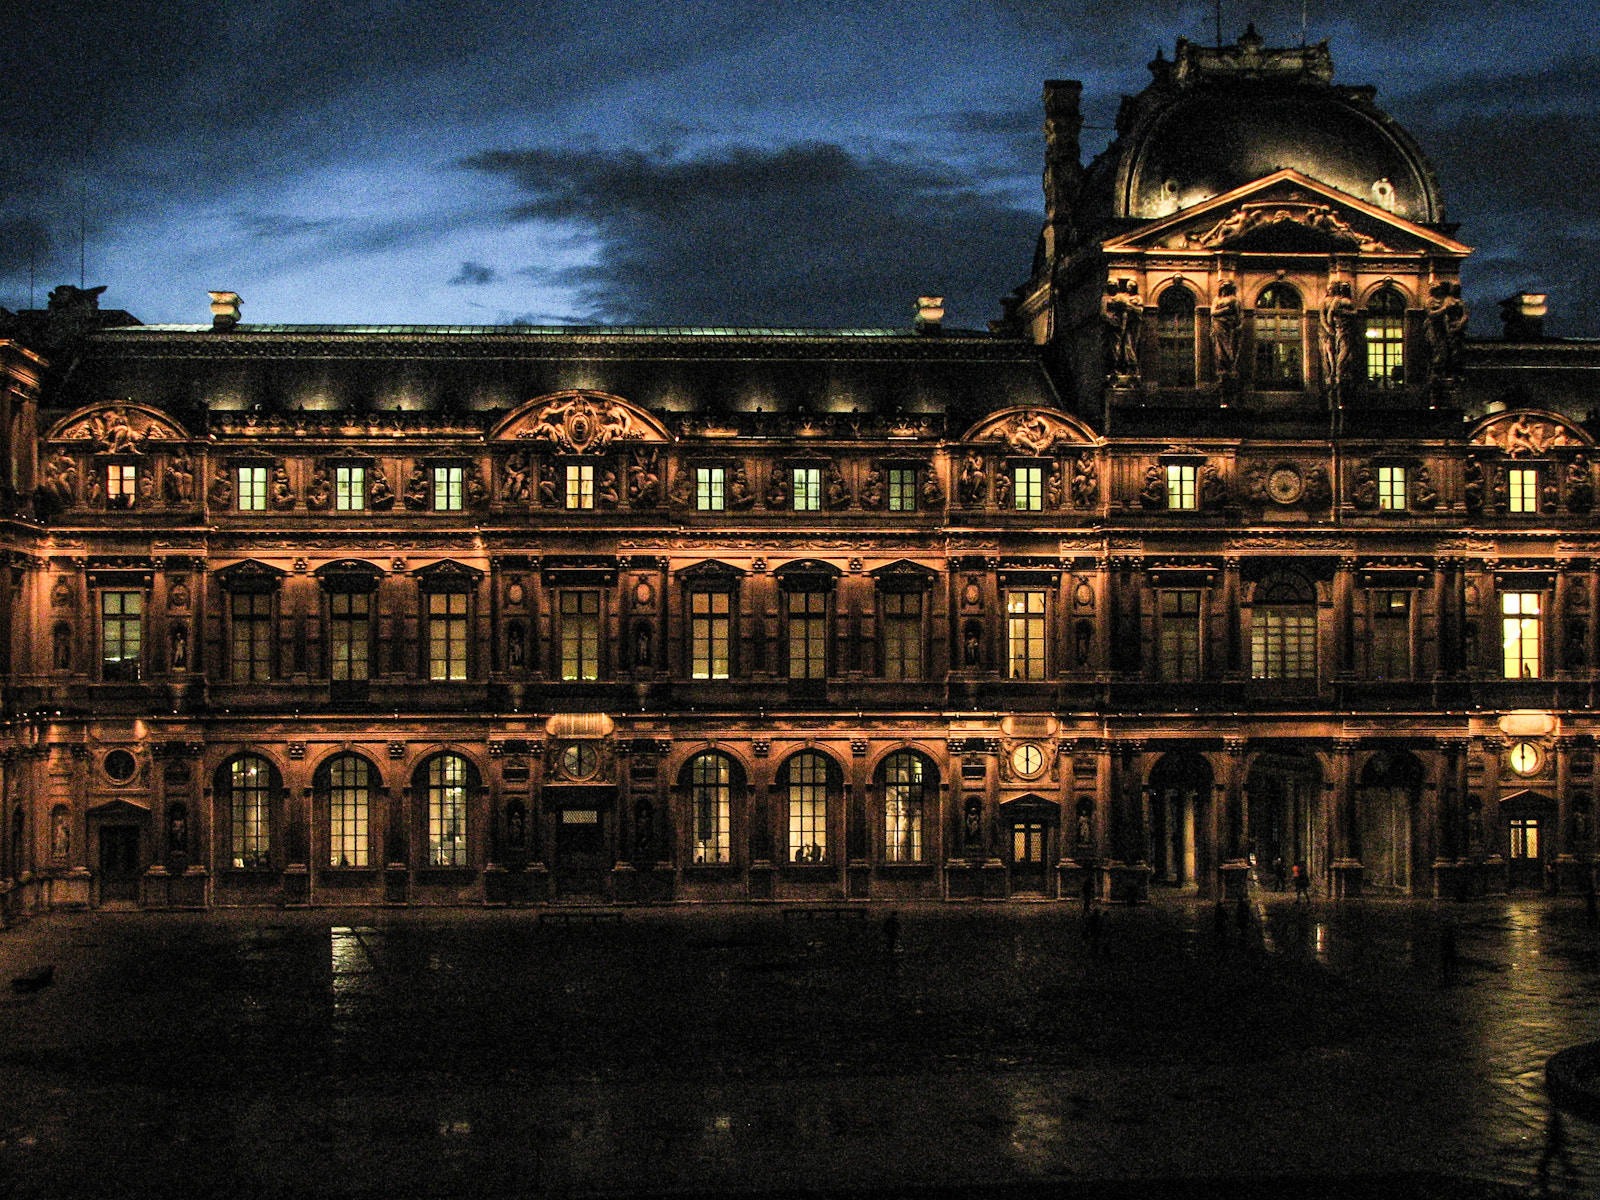 Photograph Musée du Louvre by Ernst Gamauf on 500px